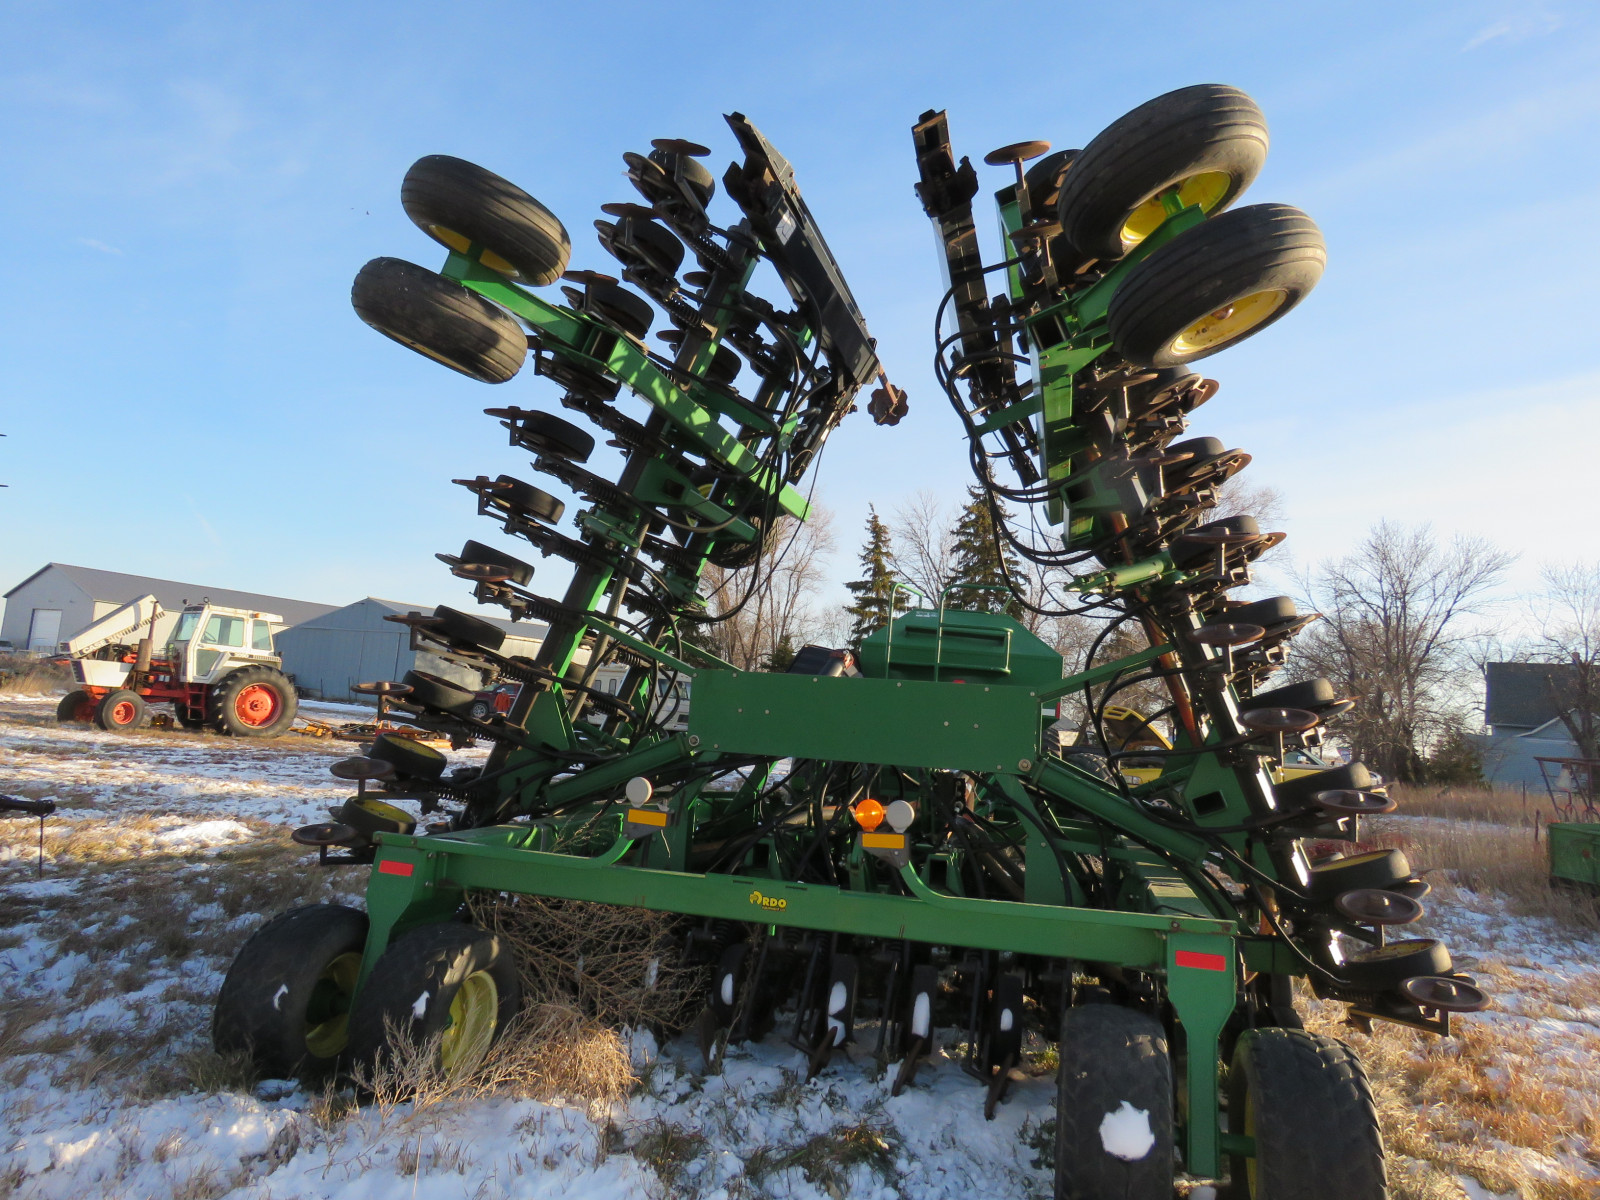 1997 John Deere Air Seeder - Image 11